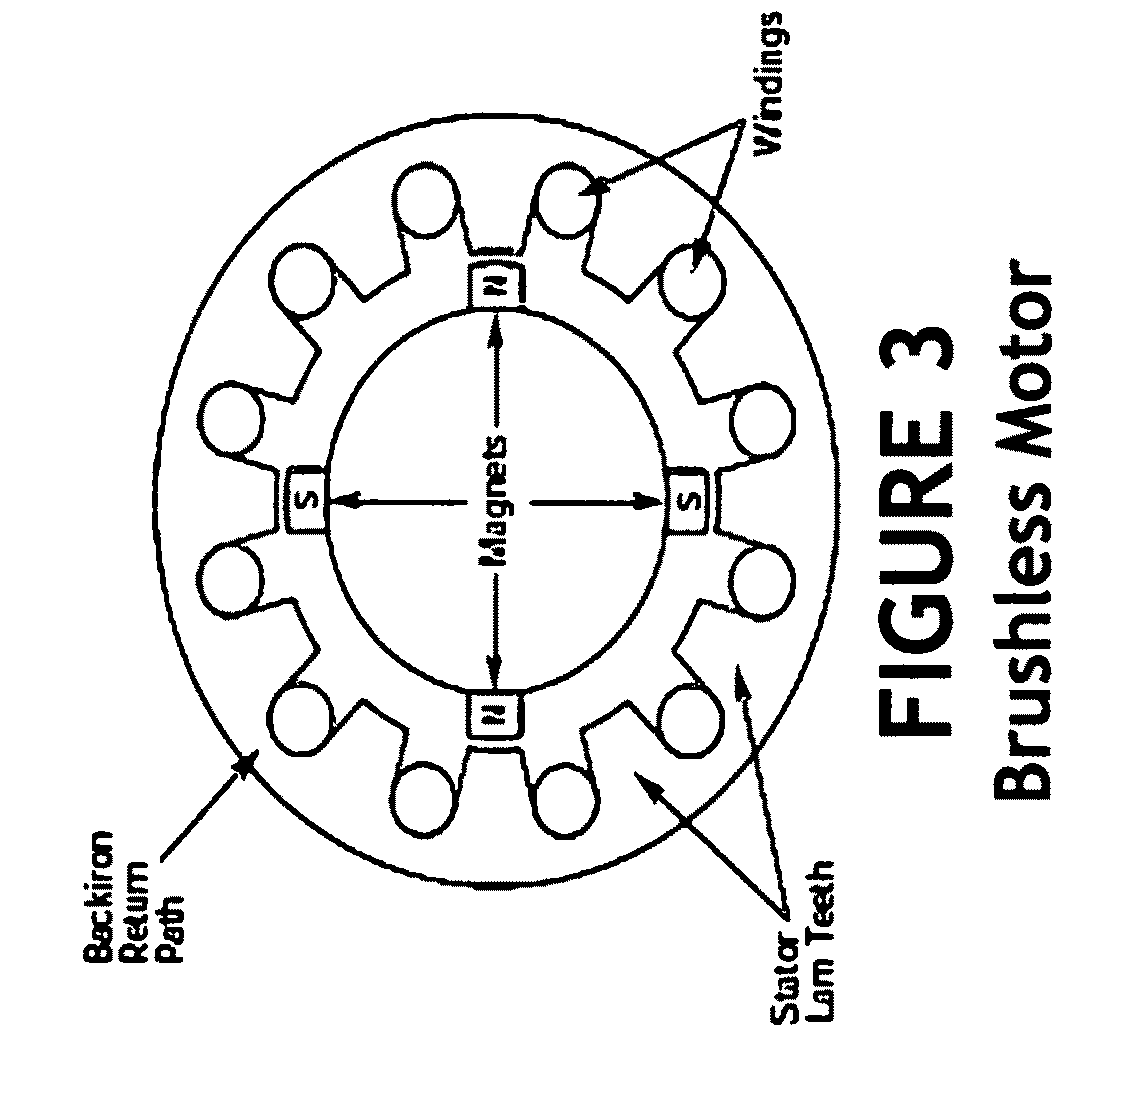 patent us20120007364 - brushless dc turbo-hydro electric generator